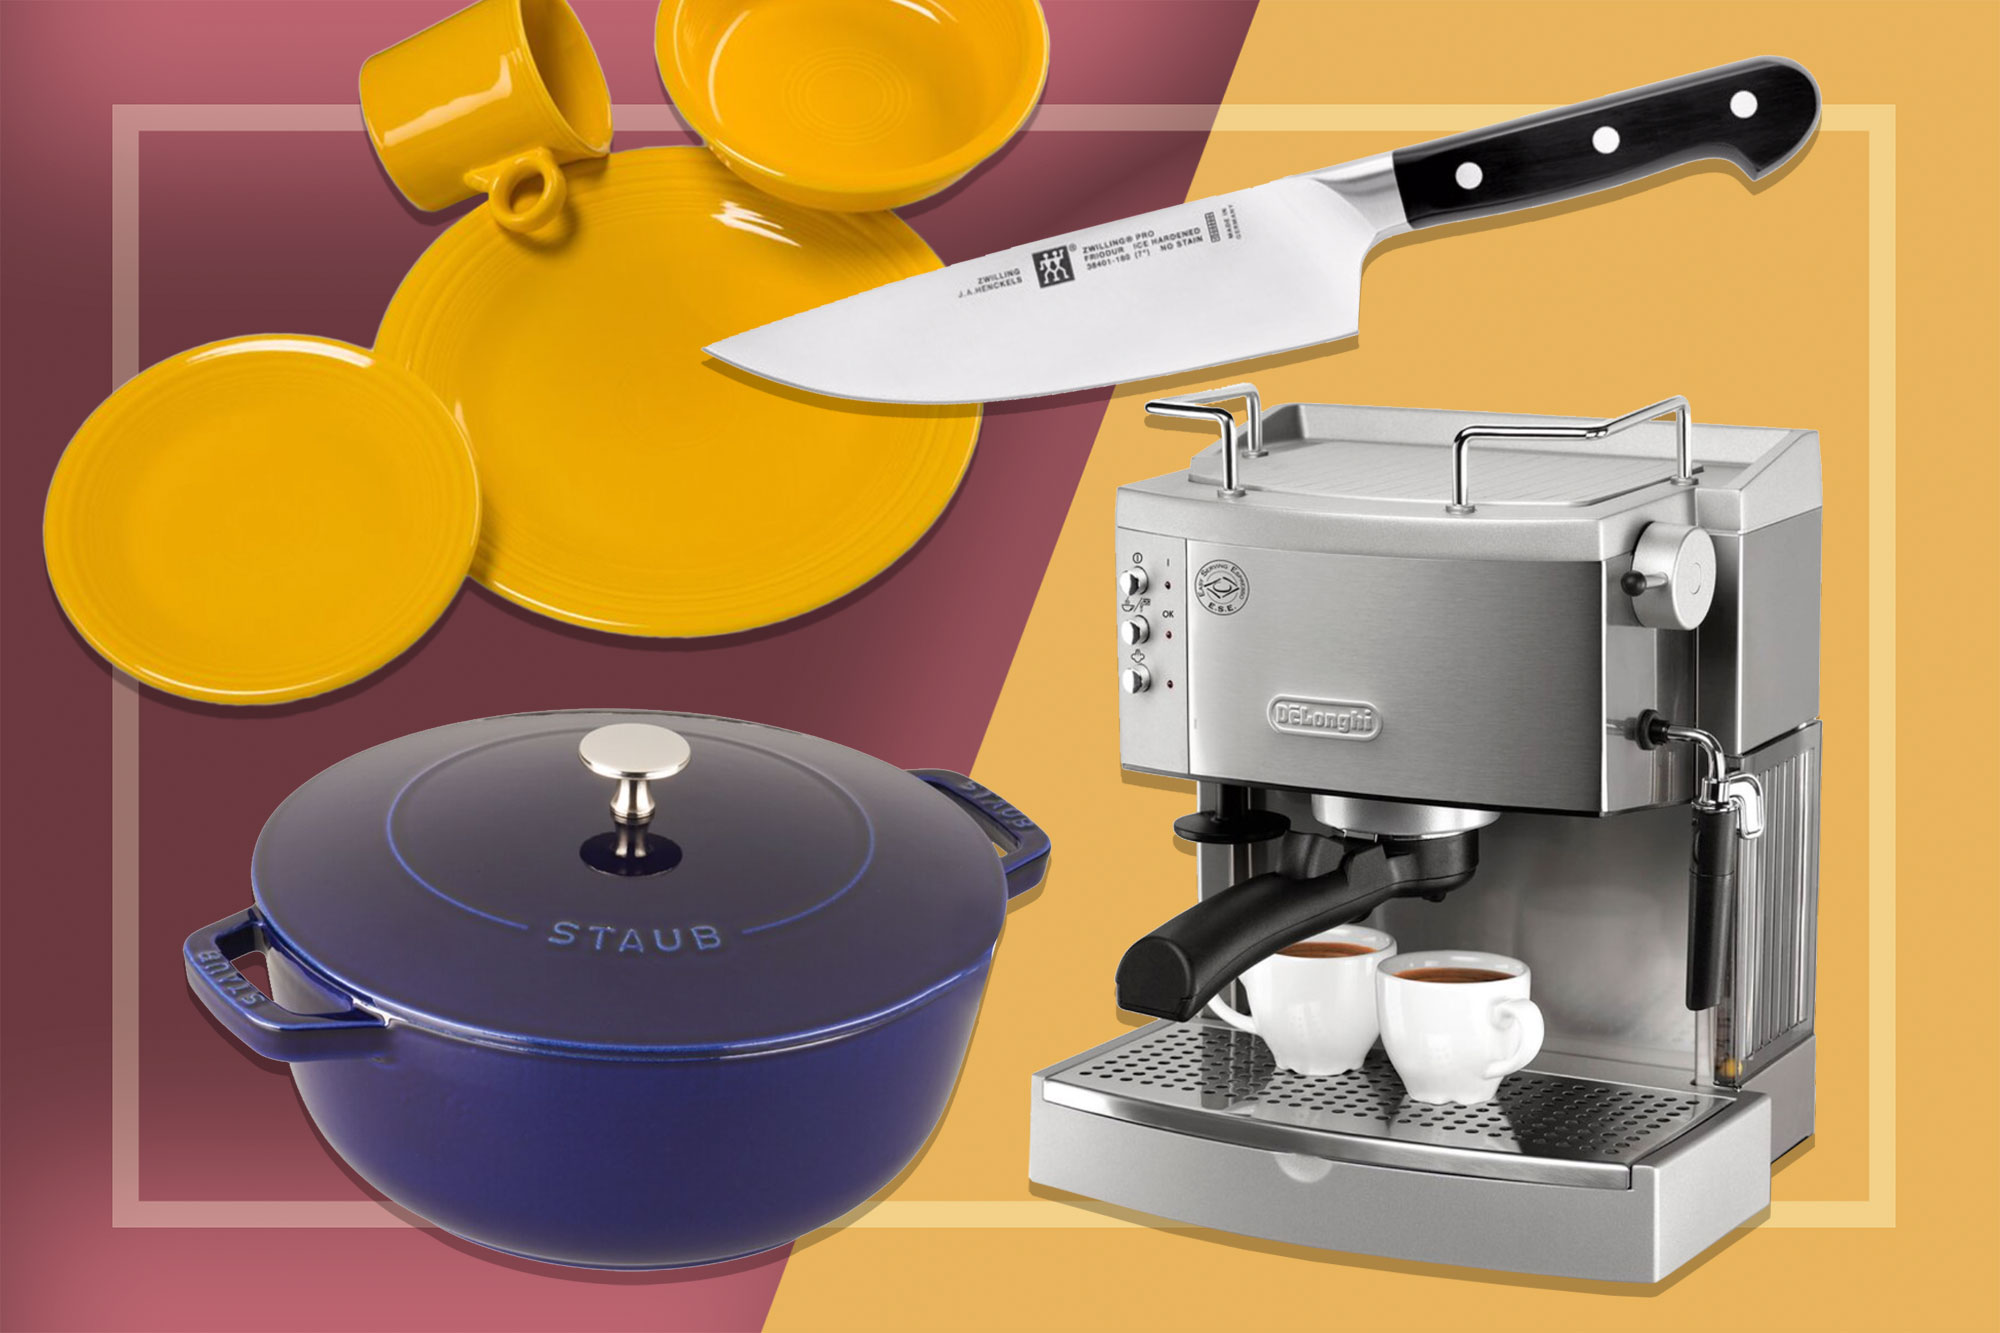 Wayfair Labor Day Sale 12: Best Kitchen Deals  Food & Wine